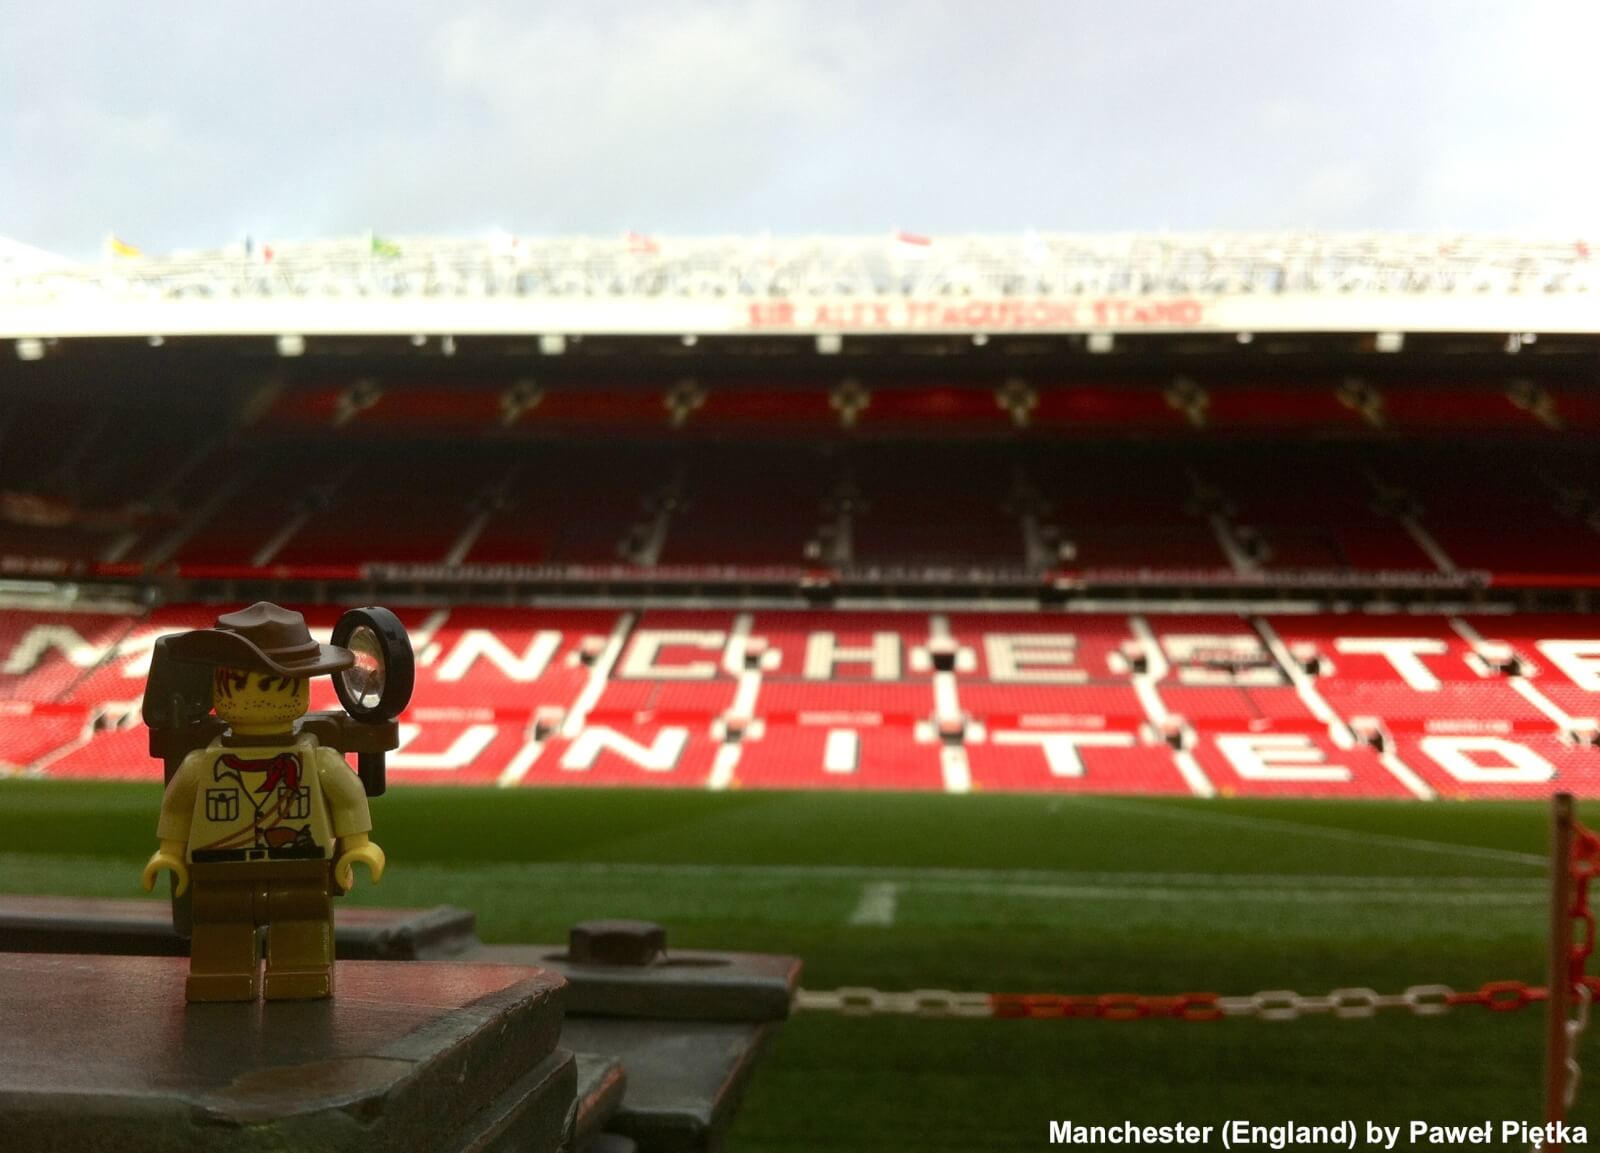 Manchester (England) - Old Trafford Inside